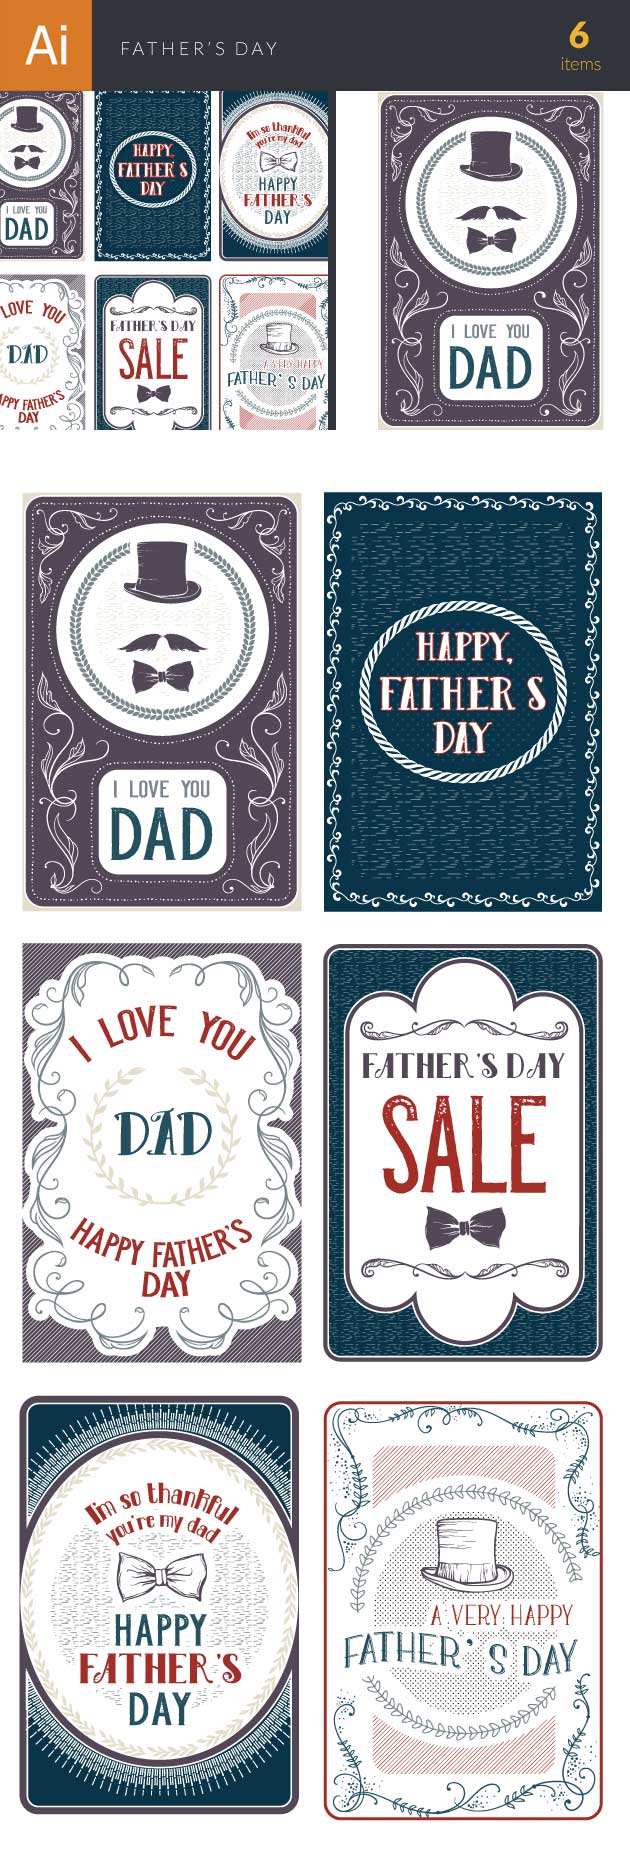 design-tnt-fathers-day-set-2-large-preview